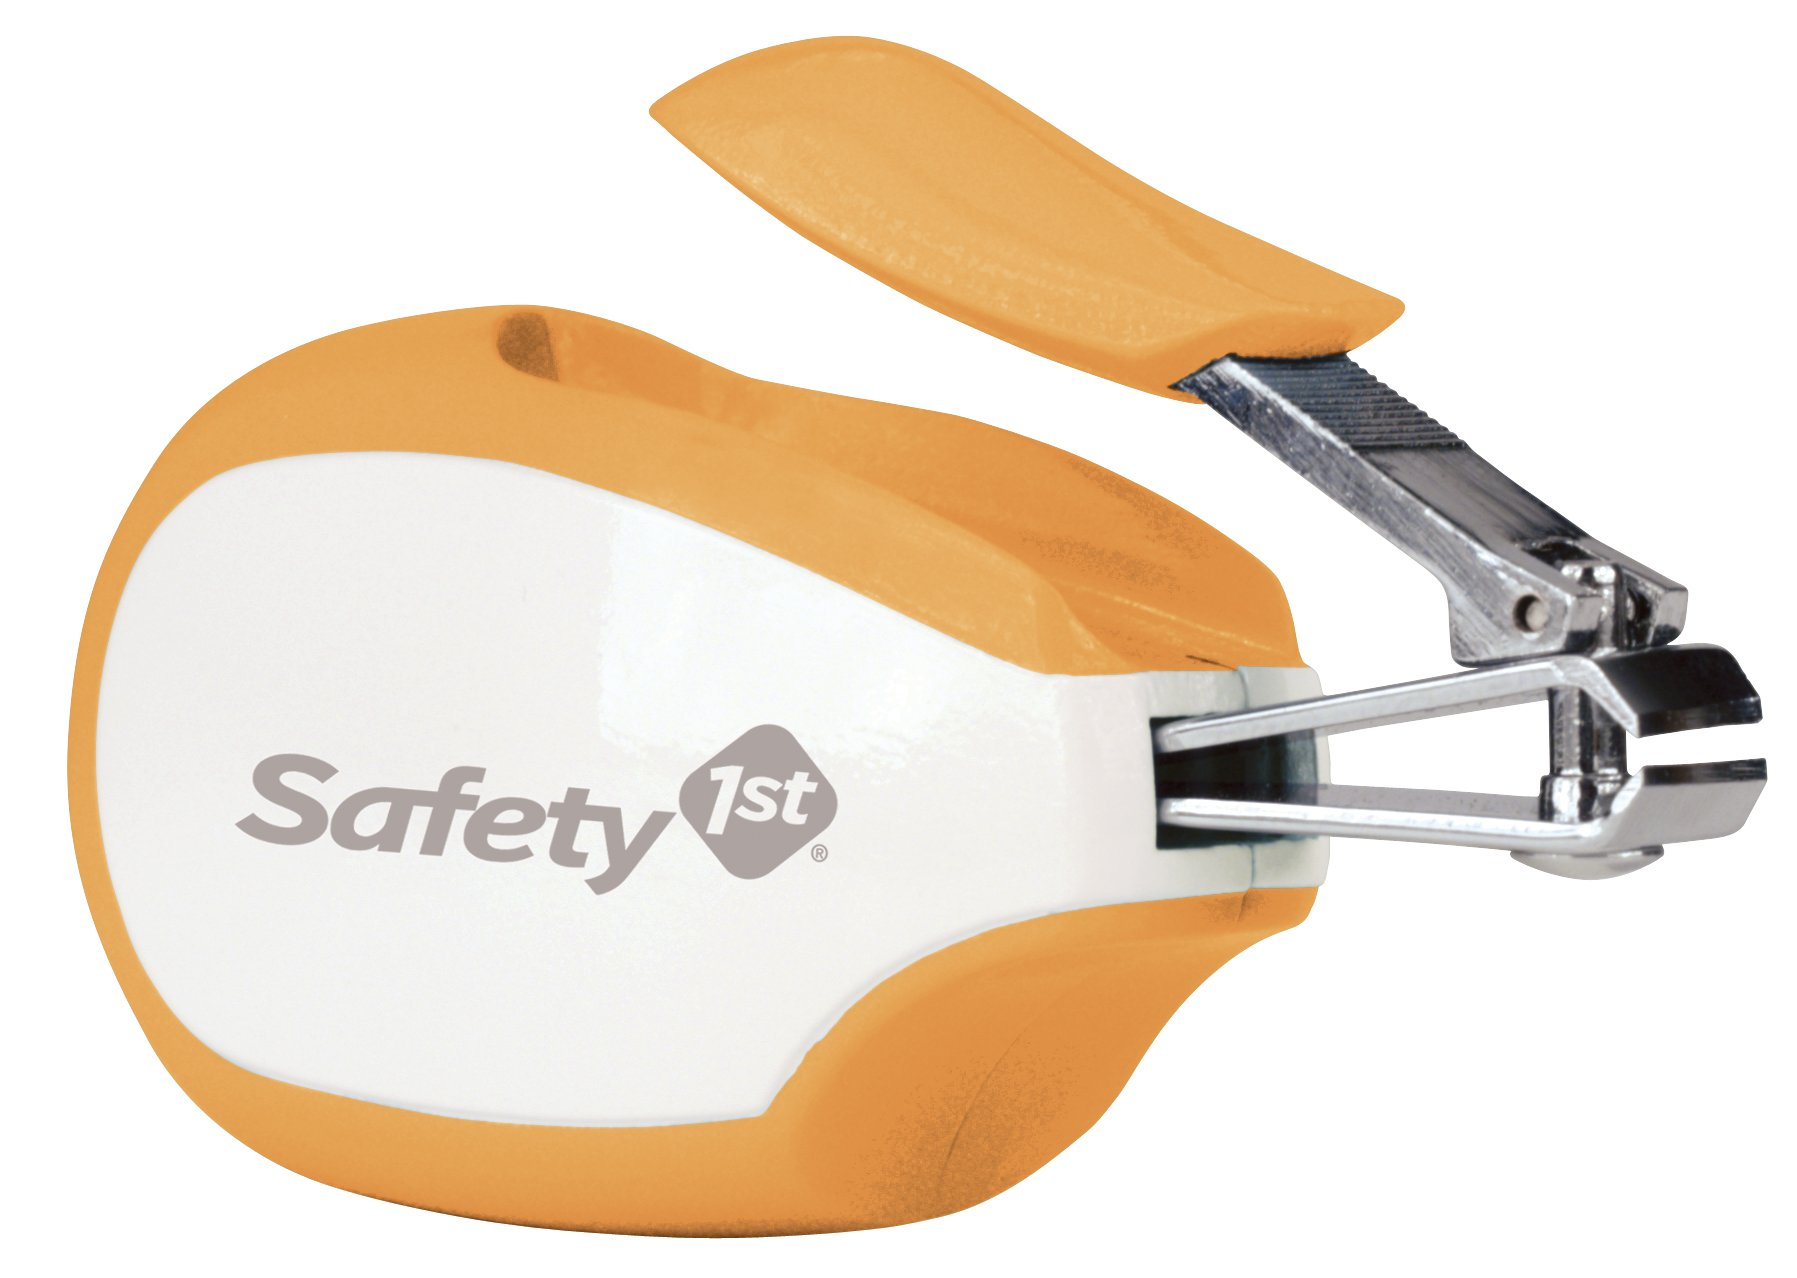 Safety 1st Steady Grip Infant Nail Clipper (Colors May Vary) 2 <p>Make grooming your baby's nails safer with the specially-designed Safety 1st Steady Grip Infant Clipper. The extra-large handle allows you to hold and operate the clippers more securely, trimming fingernails and toenails more effectively and safely, while the soft-touch texture steadies your grip. Folding up for storage, this nail clipper makes a great addition to your diaper bag. This pack includes one infant nail clipper. Designed for baby's nails - Nail clipper is specially designed for trimming tiny finger and toe nails Easy to hold & use - Extra-large, soft-touch handle provides a more comfortable and secure grip Safe for all ages - Nail clippers can be used from newborns to toddlers Perfect for diaper bag - Folding up for storage, this nail clipper makes a great addition to your diaper bag 1 piece set - This pack includes one infant nail clipper</p>